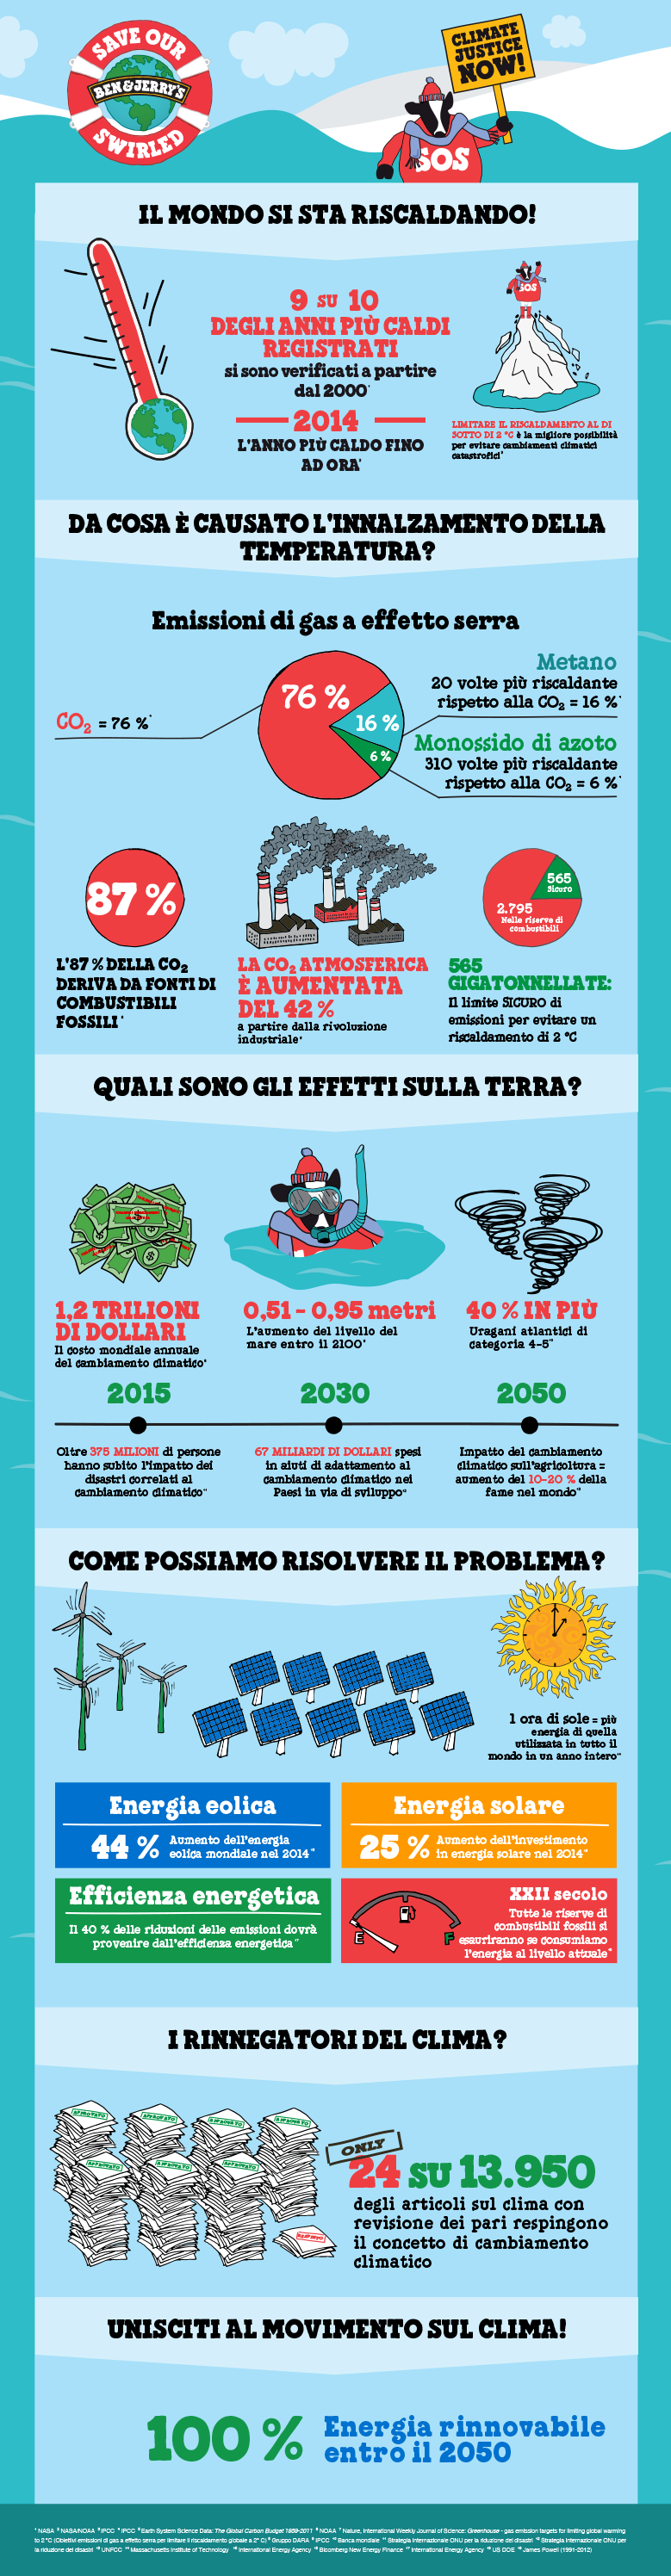 BJ_ClimateChange_Infographic_Italian-(Italy).png